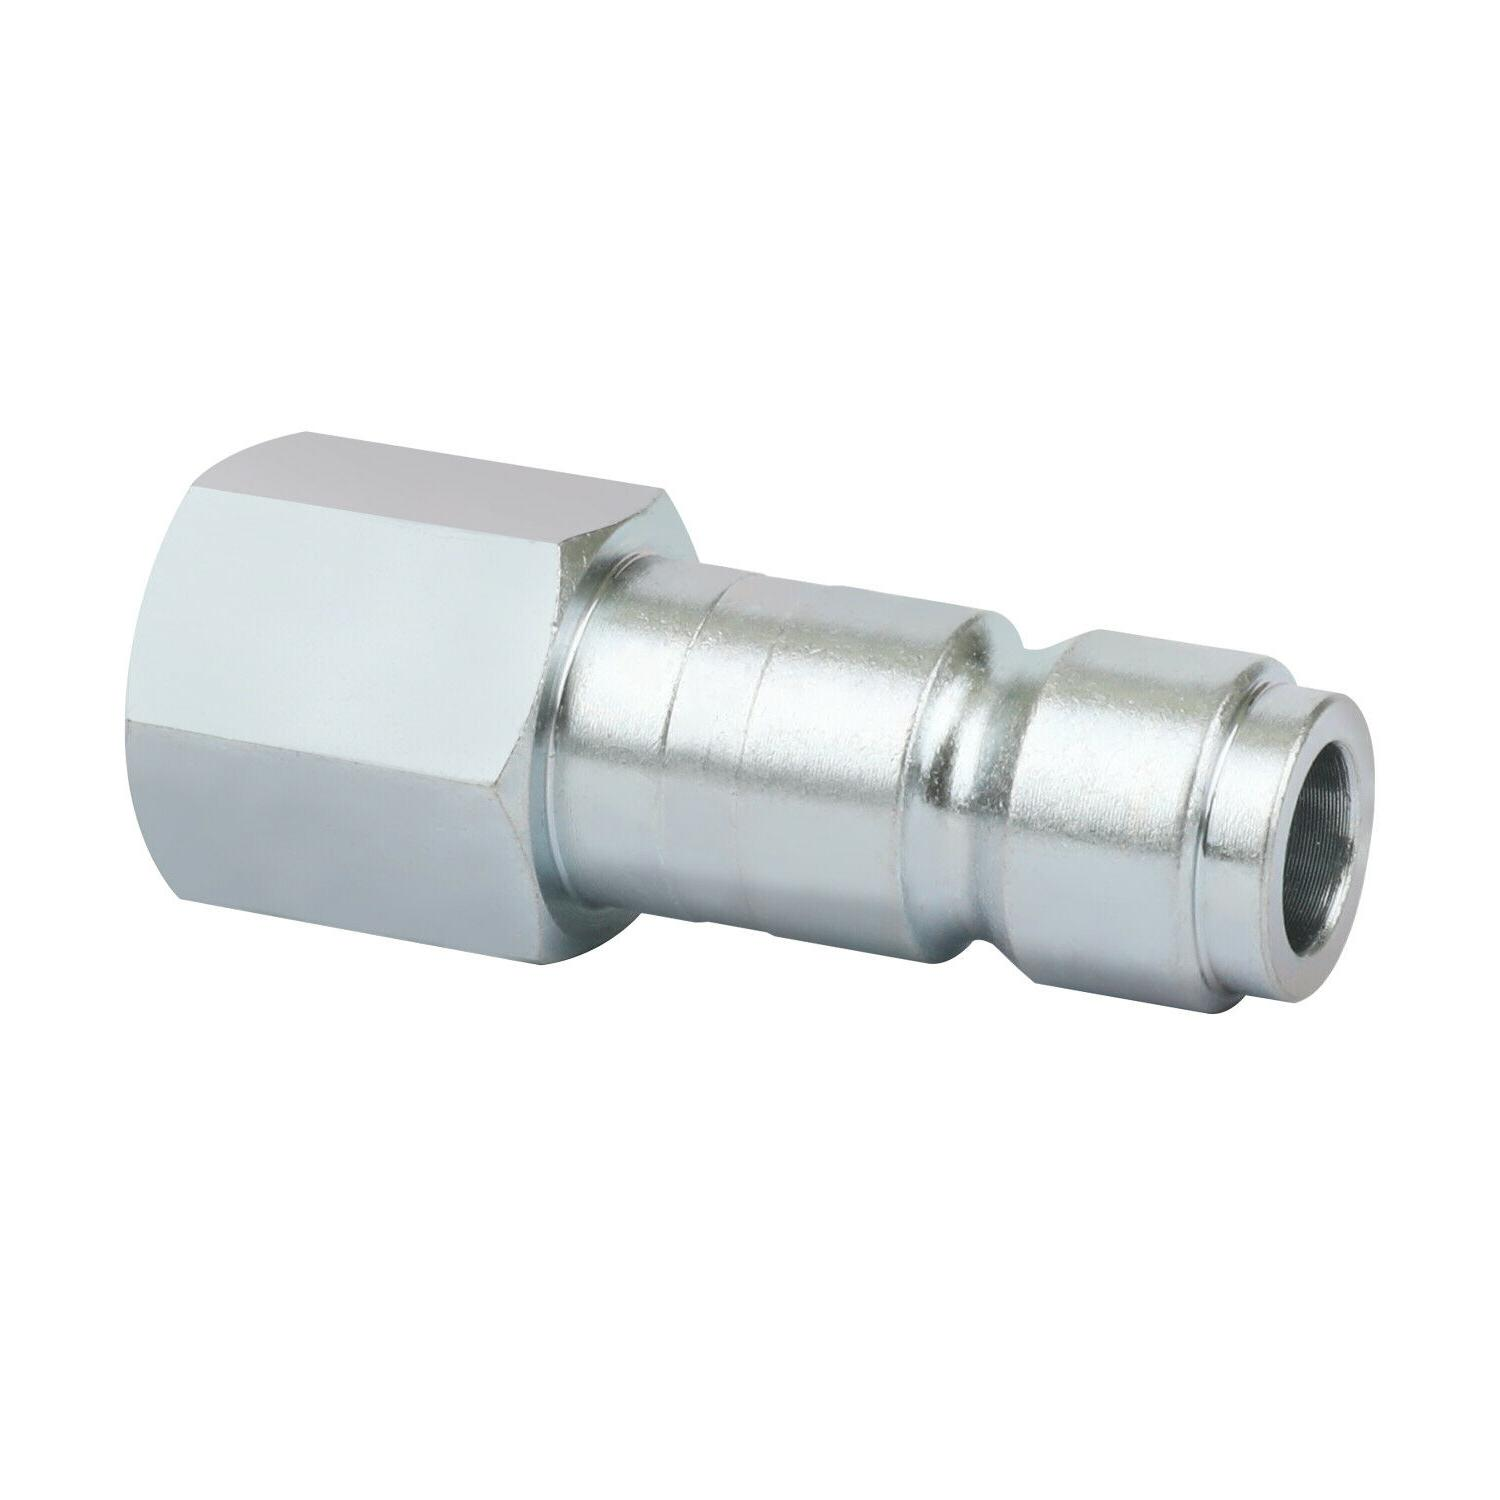 WYNNsky Industrial Air Fittings,Quick-Connect Plug,T